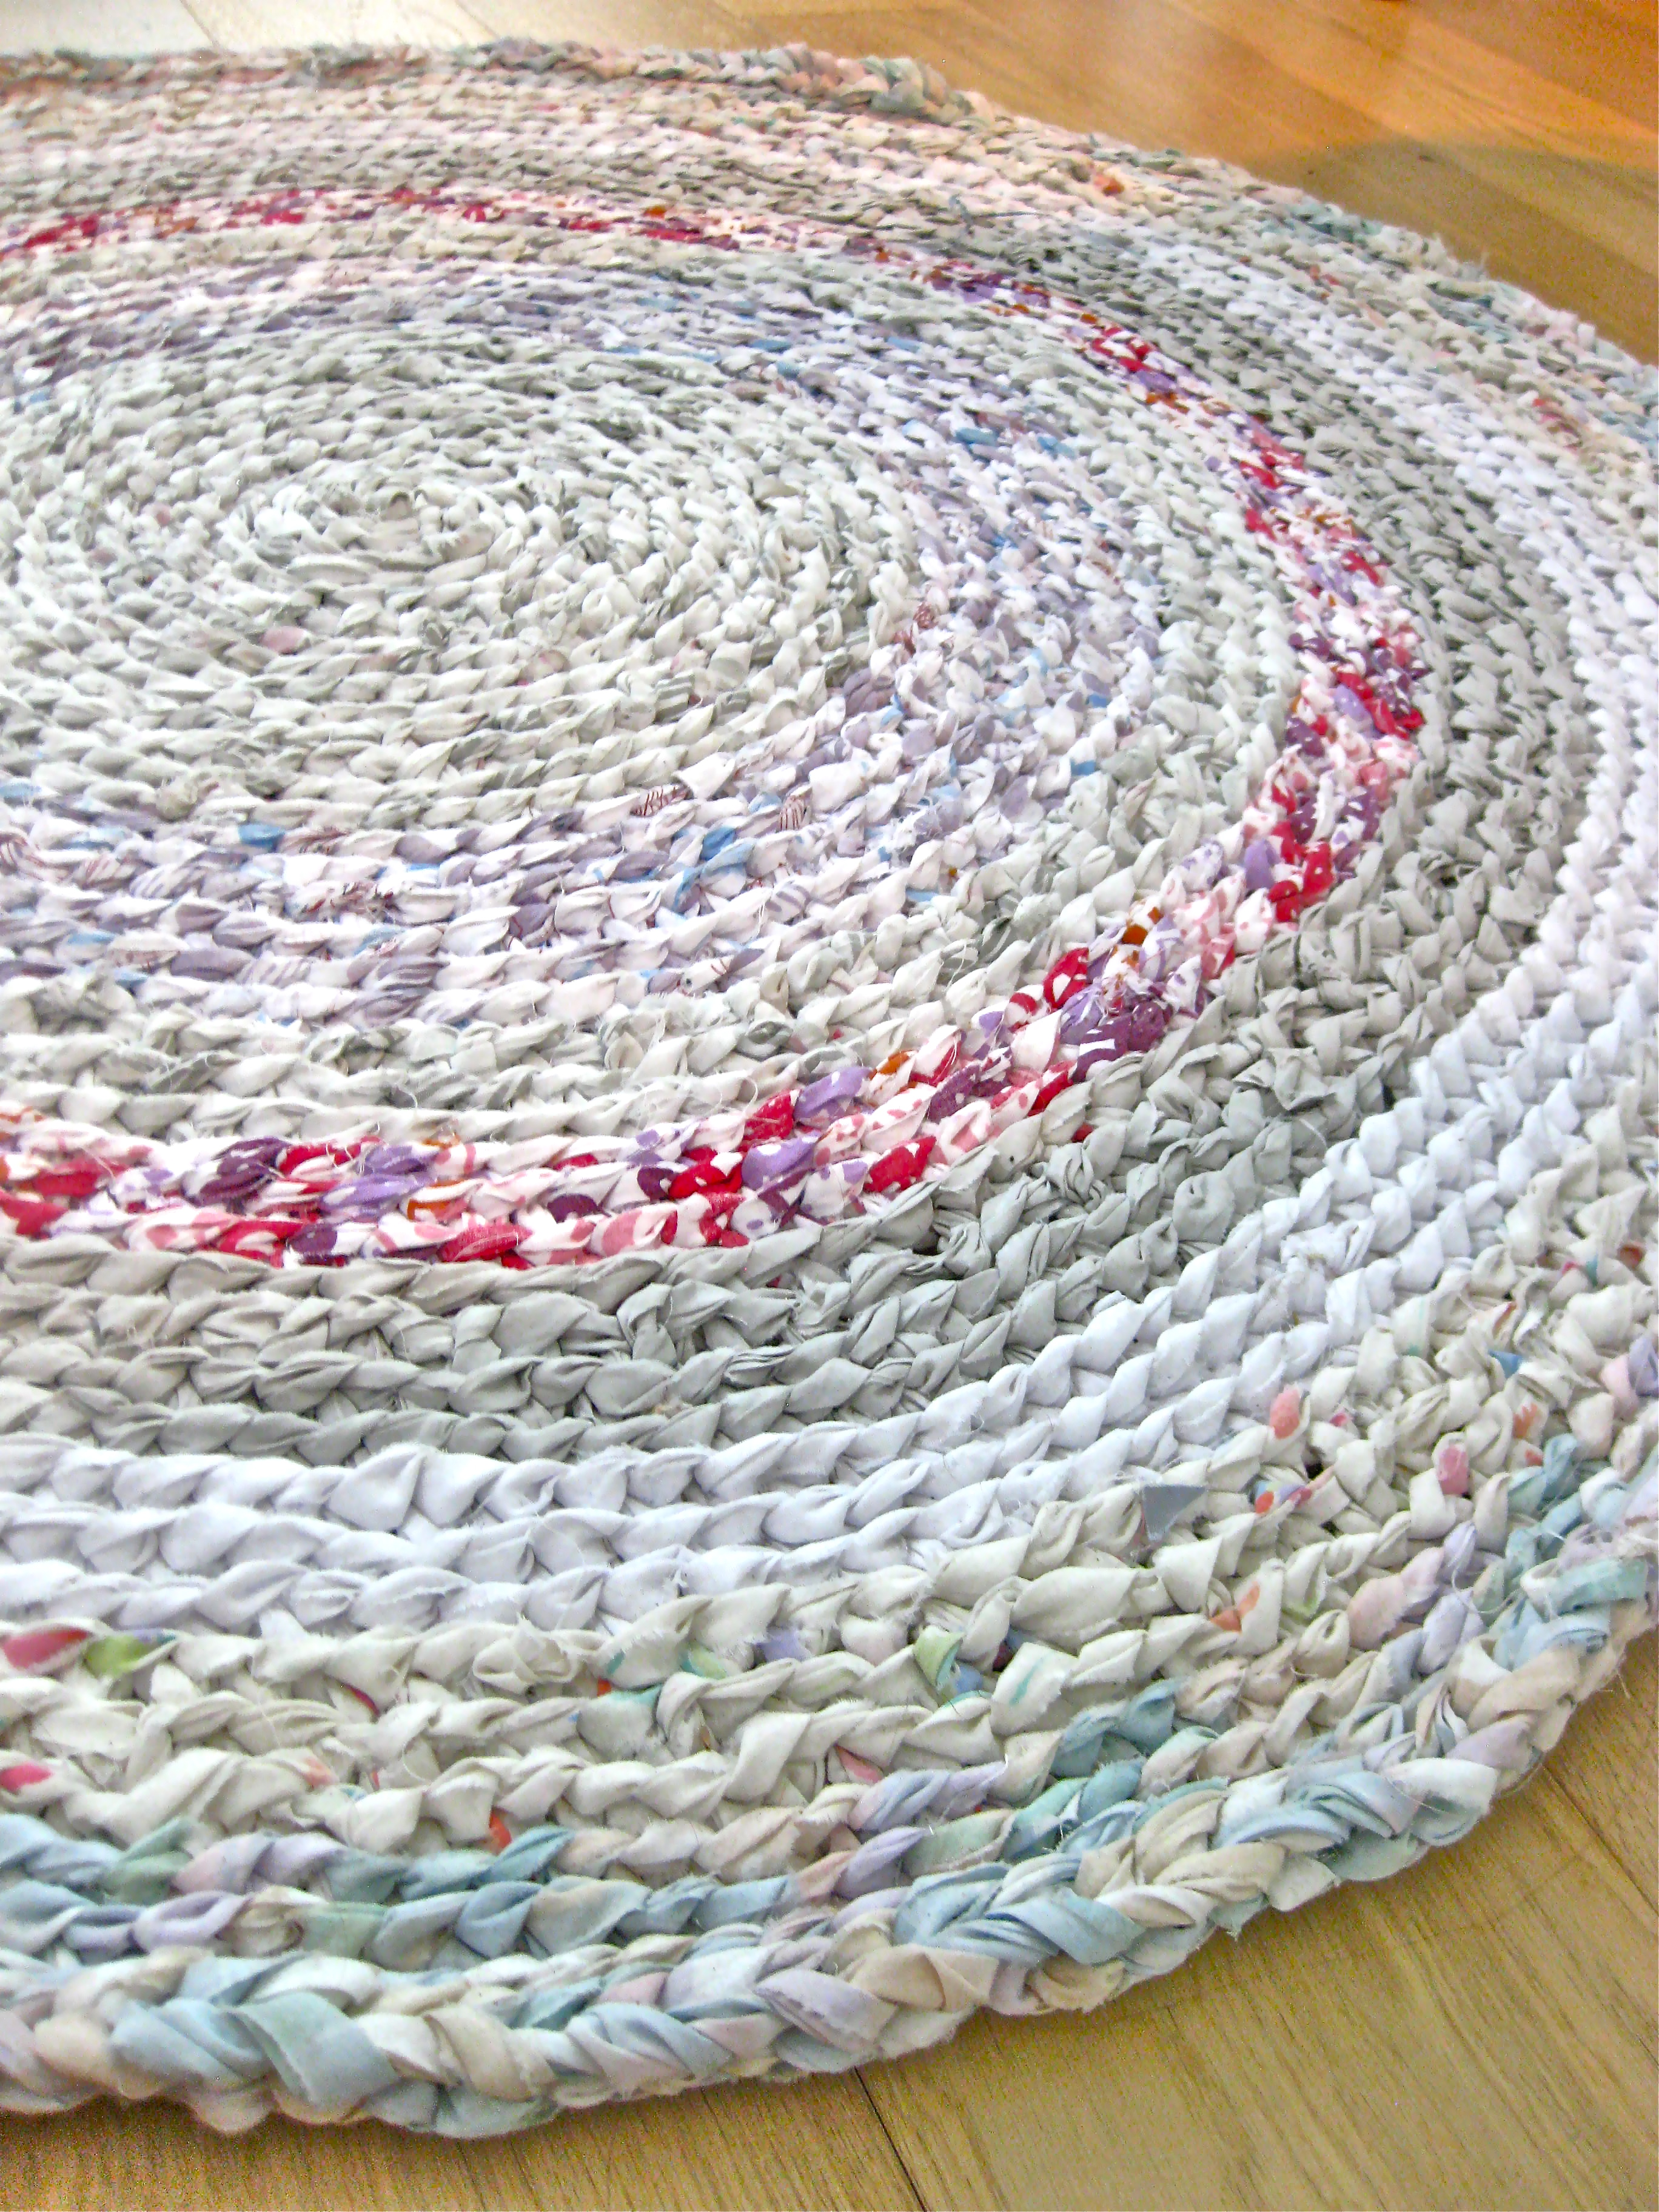 My First Rag Rug! | Making Things is Awesome | Quilts ...